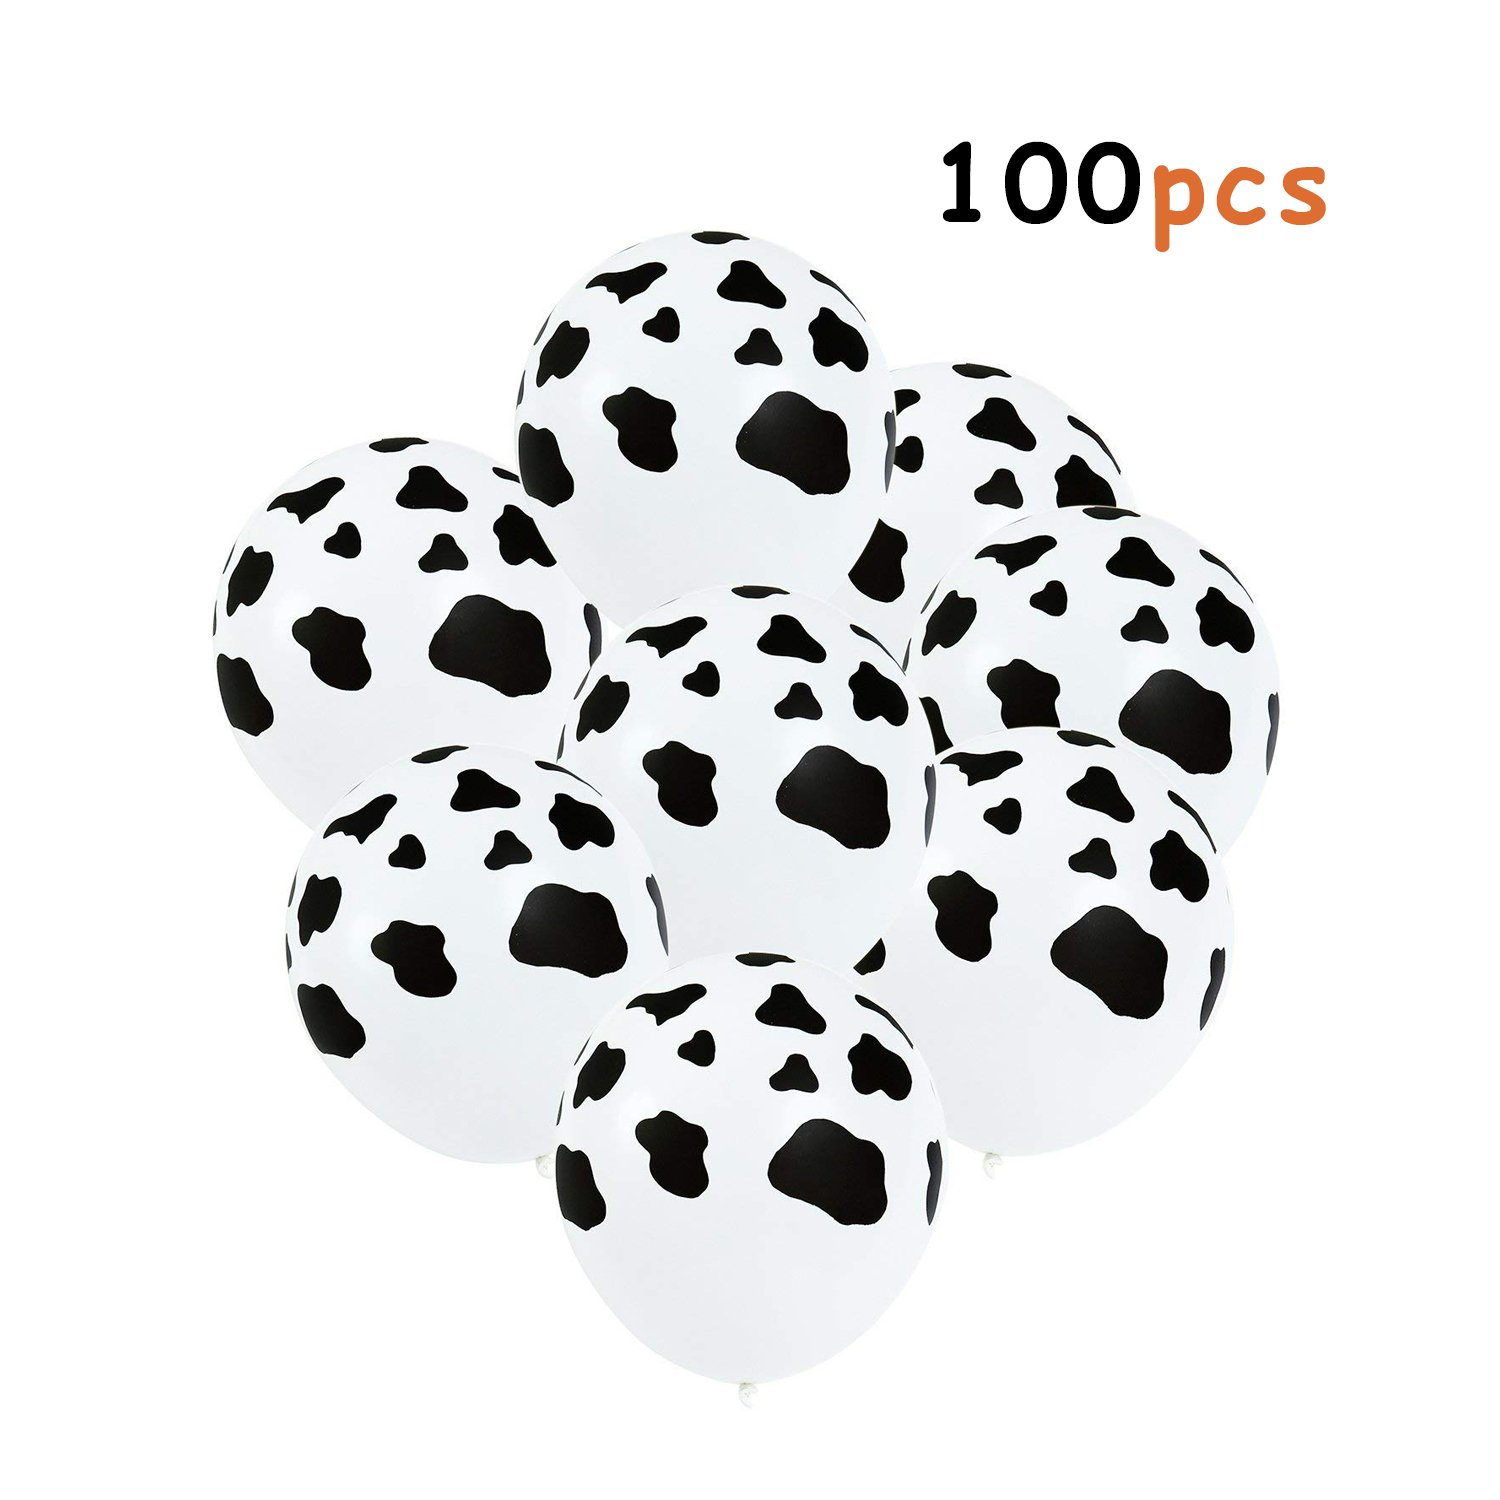 Muhuyi 12 Inches Funny Cow Print Latex Balloons for Children's Birthday Farm Animal Theme Party Supplies Decoration (100 Pieces)